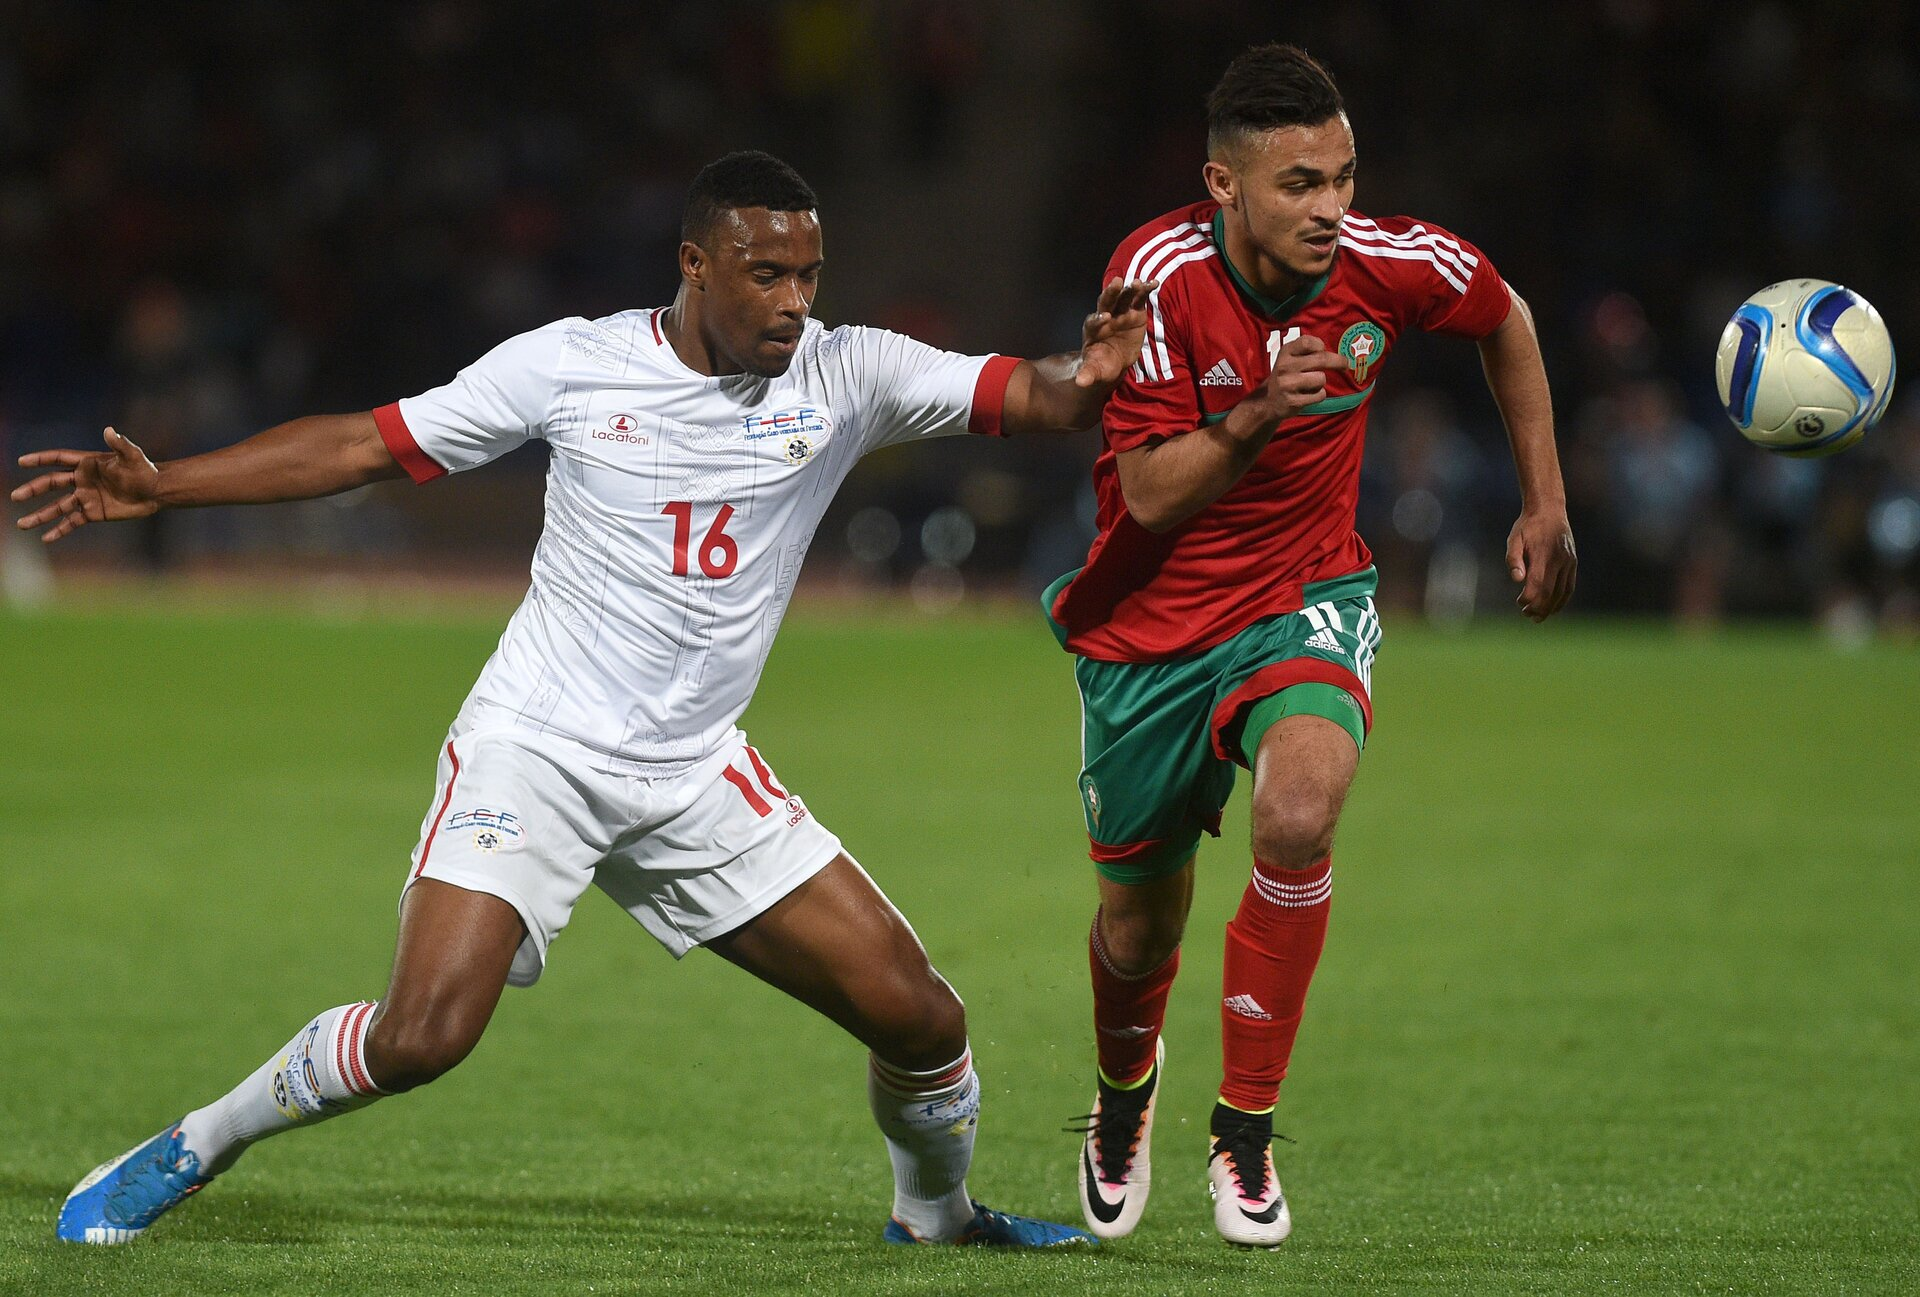 Morocco's Boufal Soufiane (R) and Cape Verde's Tiago Almeida vie for the ball during their African Cup of Nations group F qualification match between Morocco and Cape Verde in Marrakesh on March 29, 2016. / AFP / FADEL SENNA        (Photo credit should read FADEL SENNA/AFP/Getty Images)